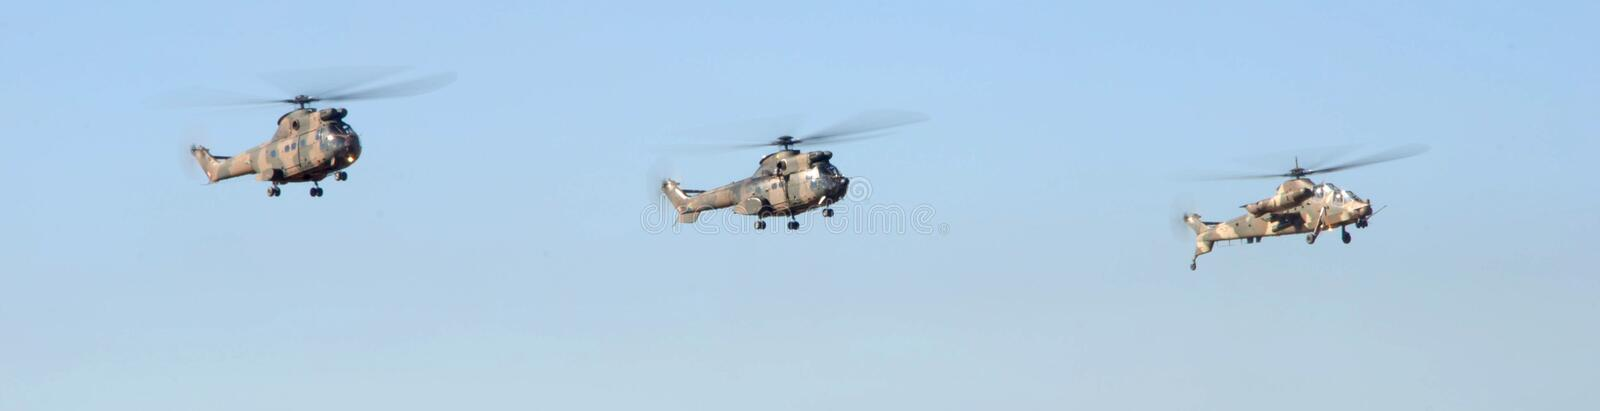 Air show. Three helecopter fly past at the Swartkop air show in Pretoria, South Africa royalty free stock photography